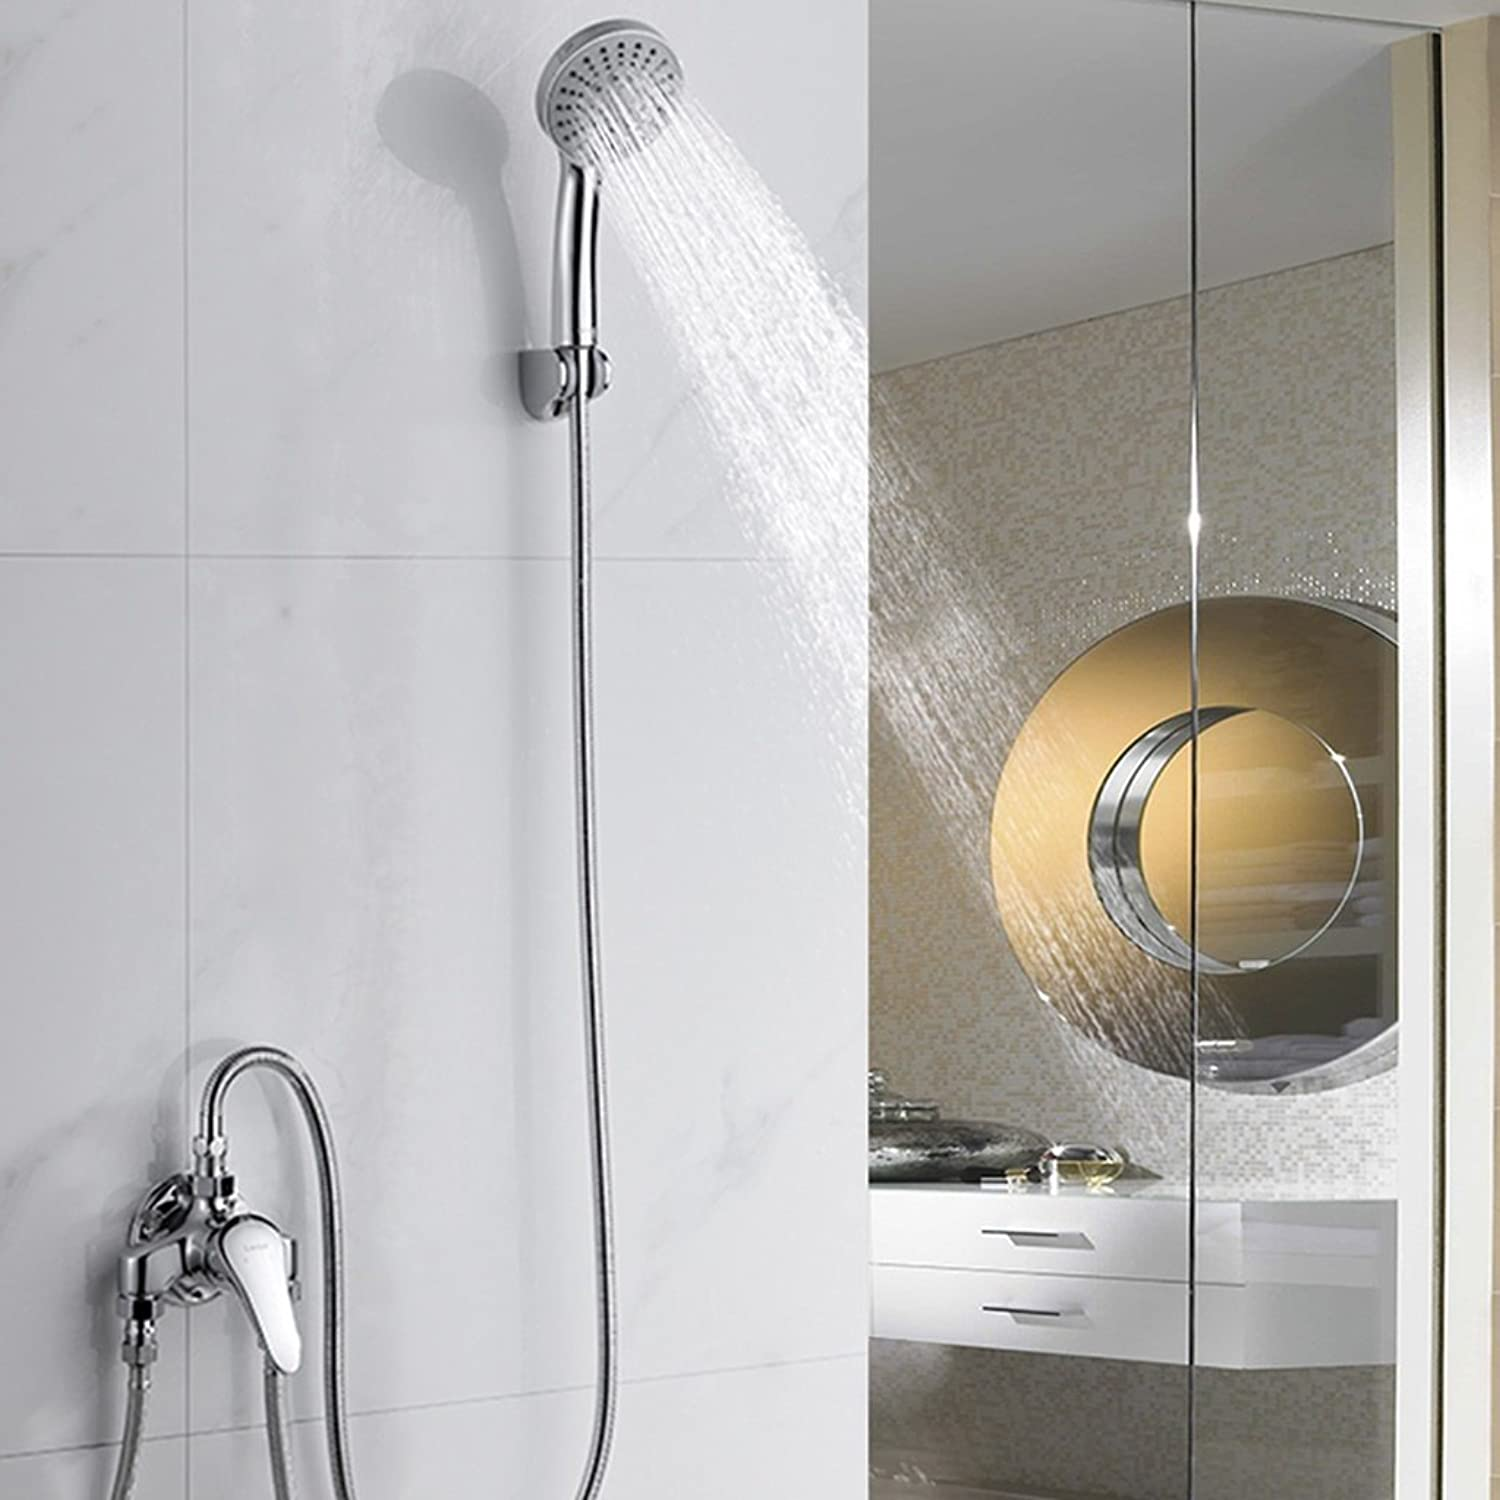 A Shower set hot and cold faucet full copper mixed water shower shower